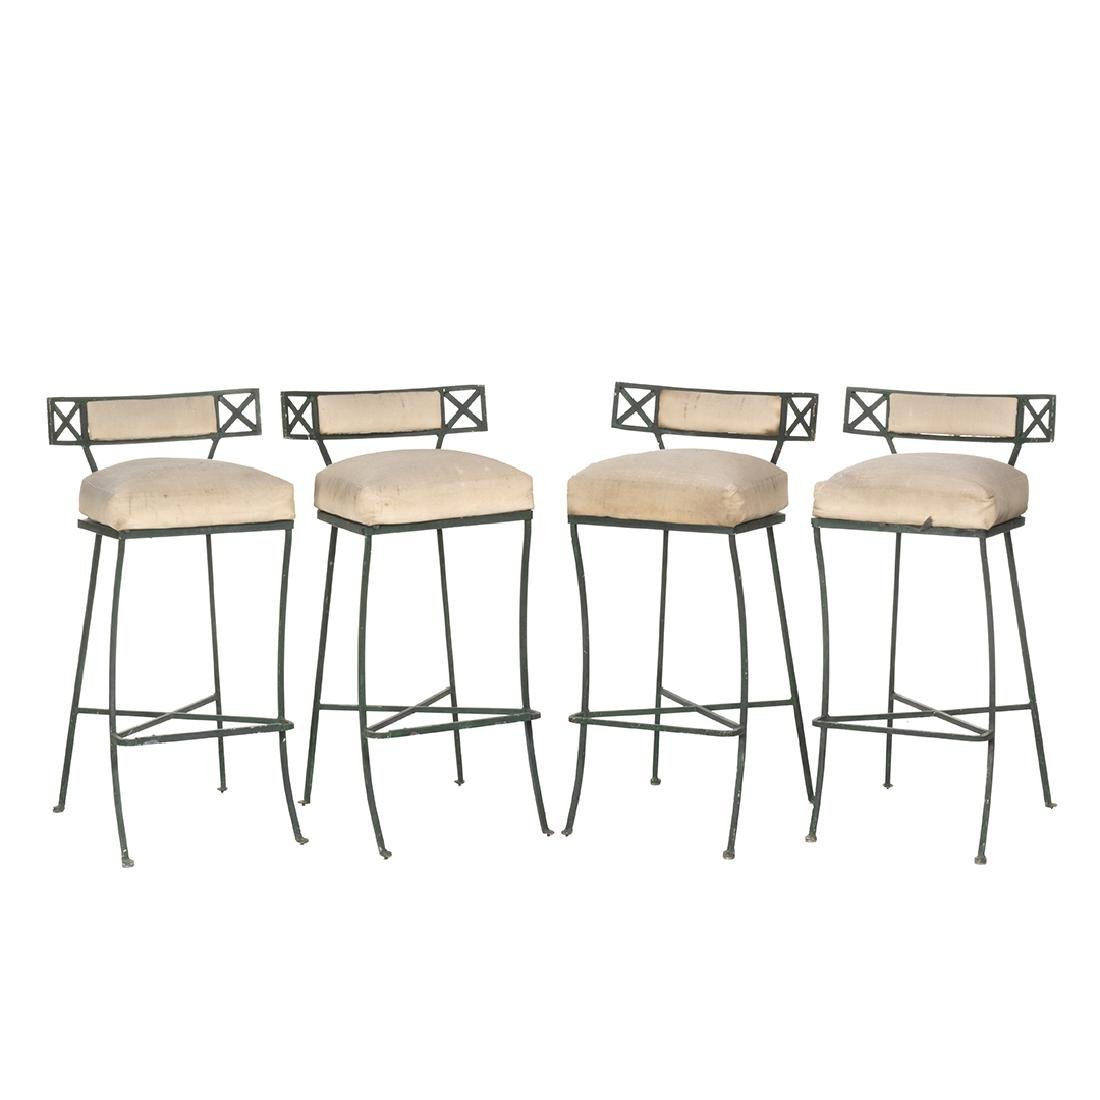 Tommi Parzinger Style Bar Stools (4)